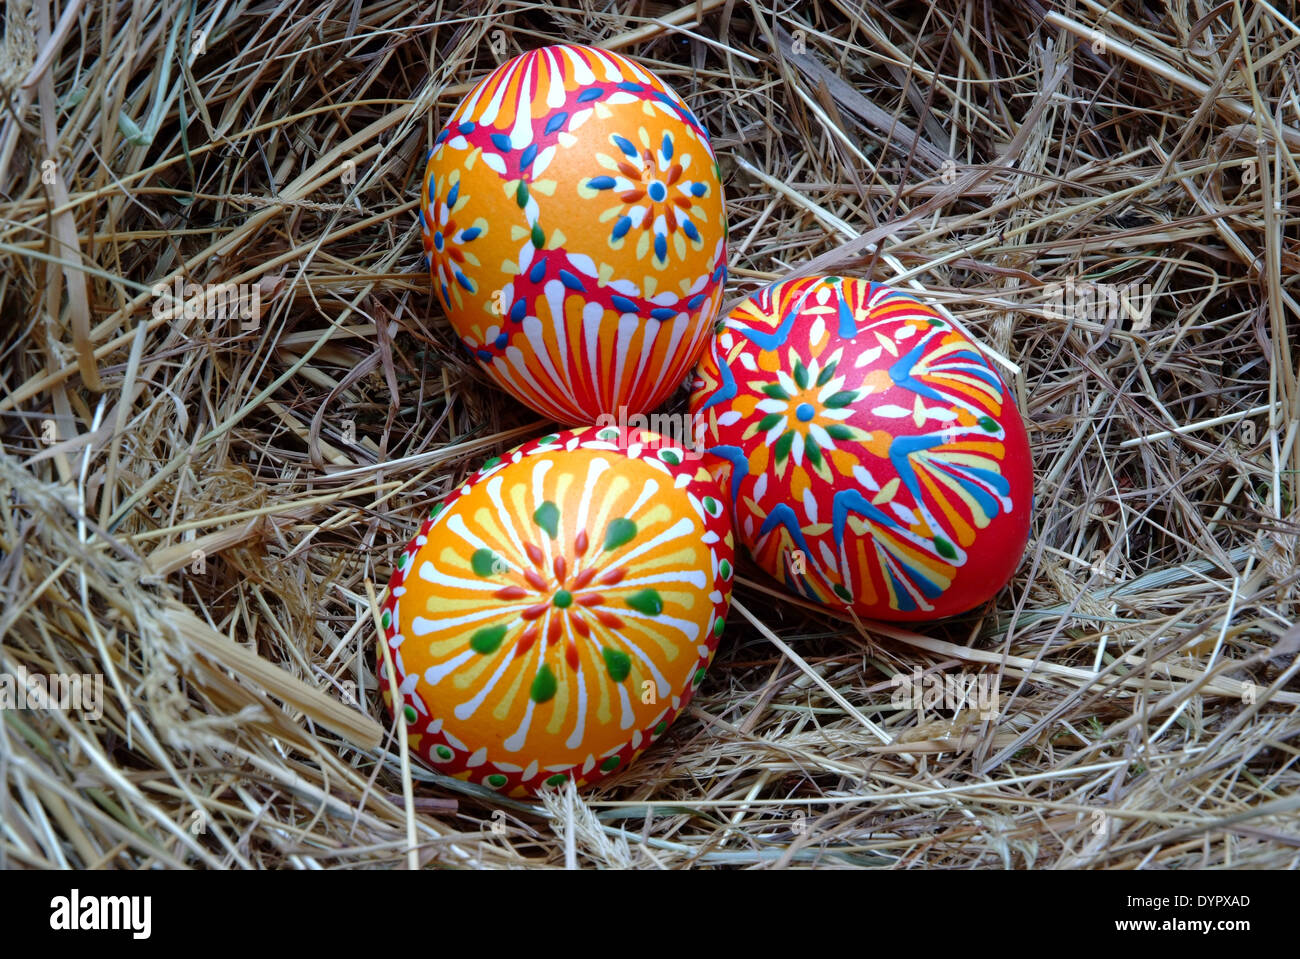 handpainted eastereggs in a nest of straw - Stock Image